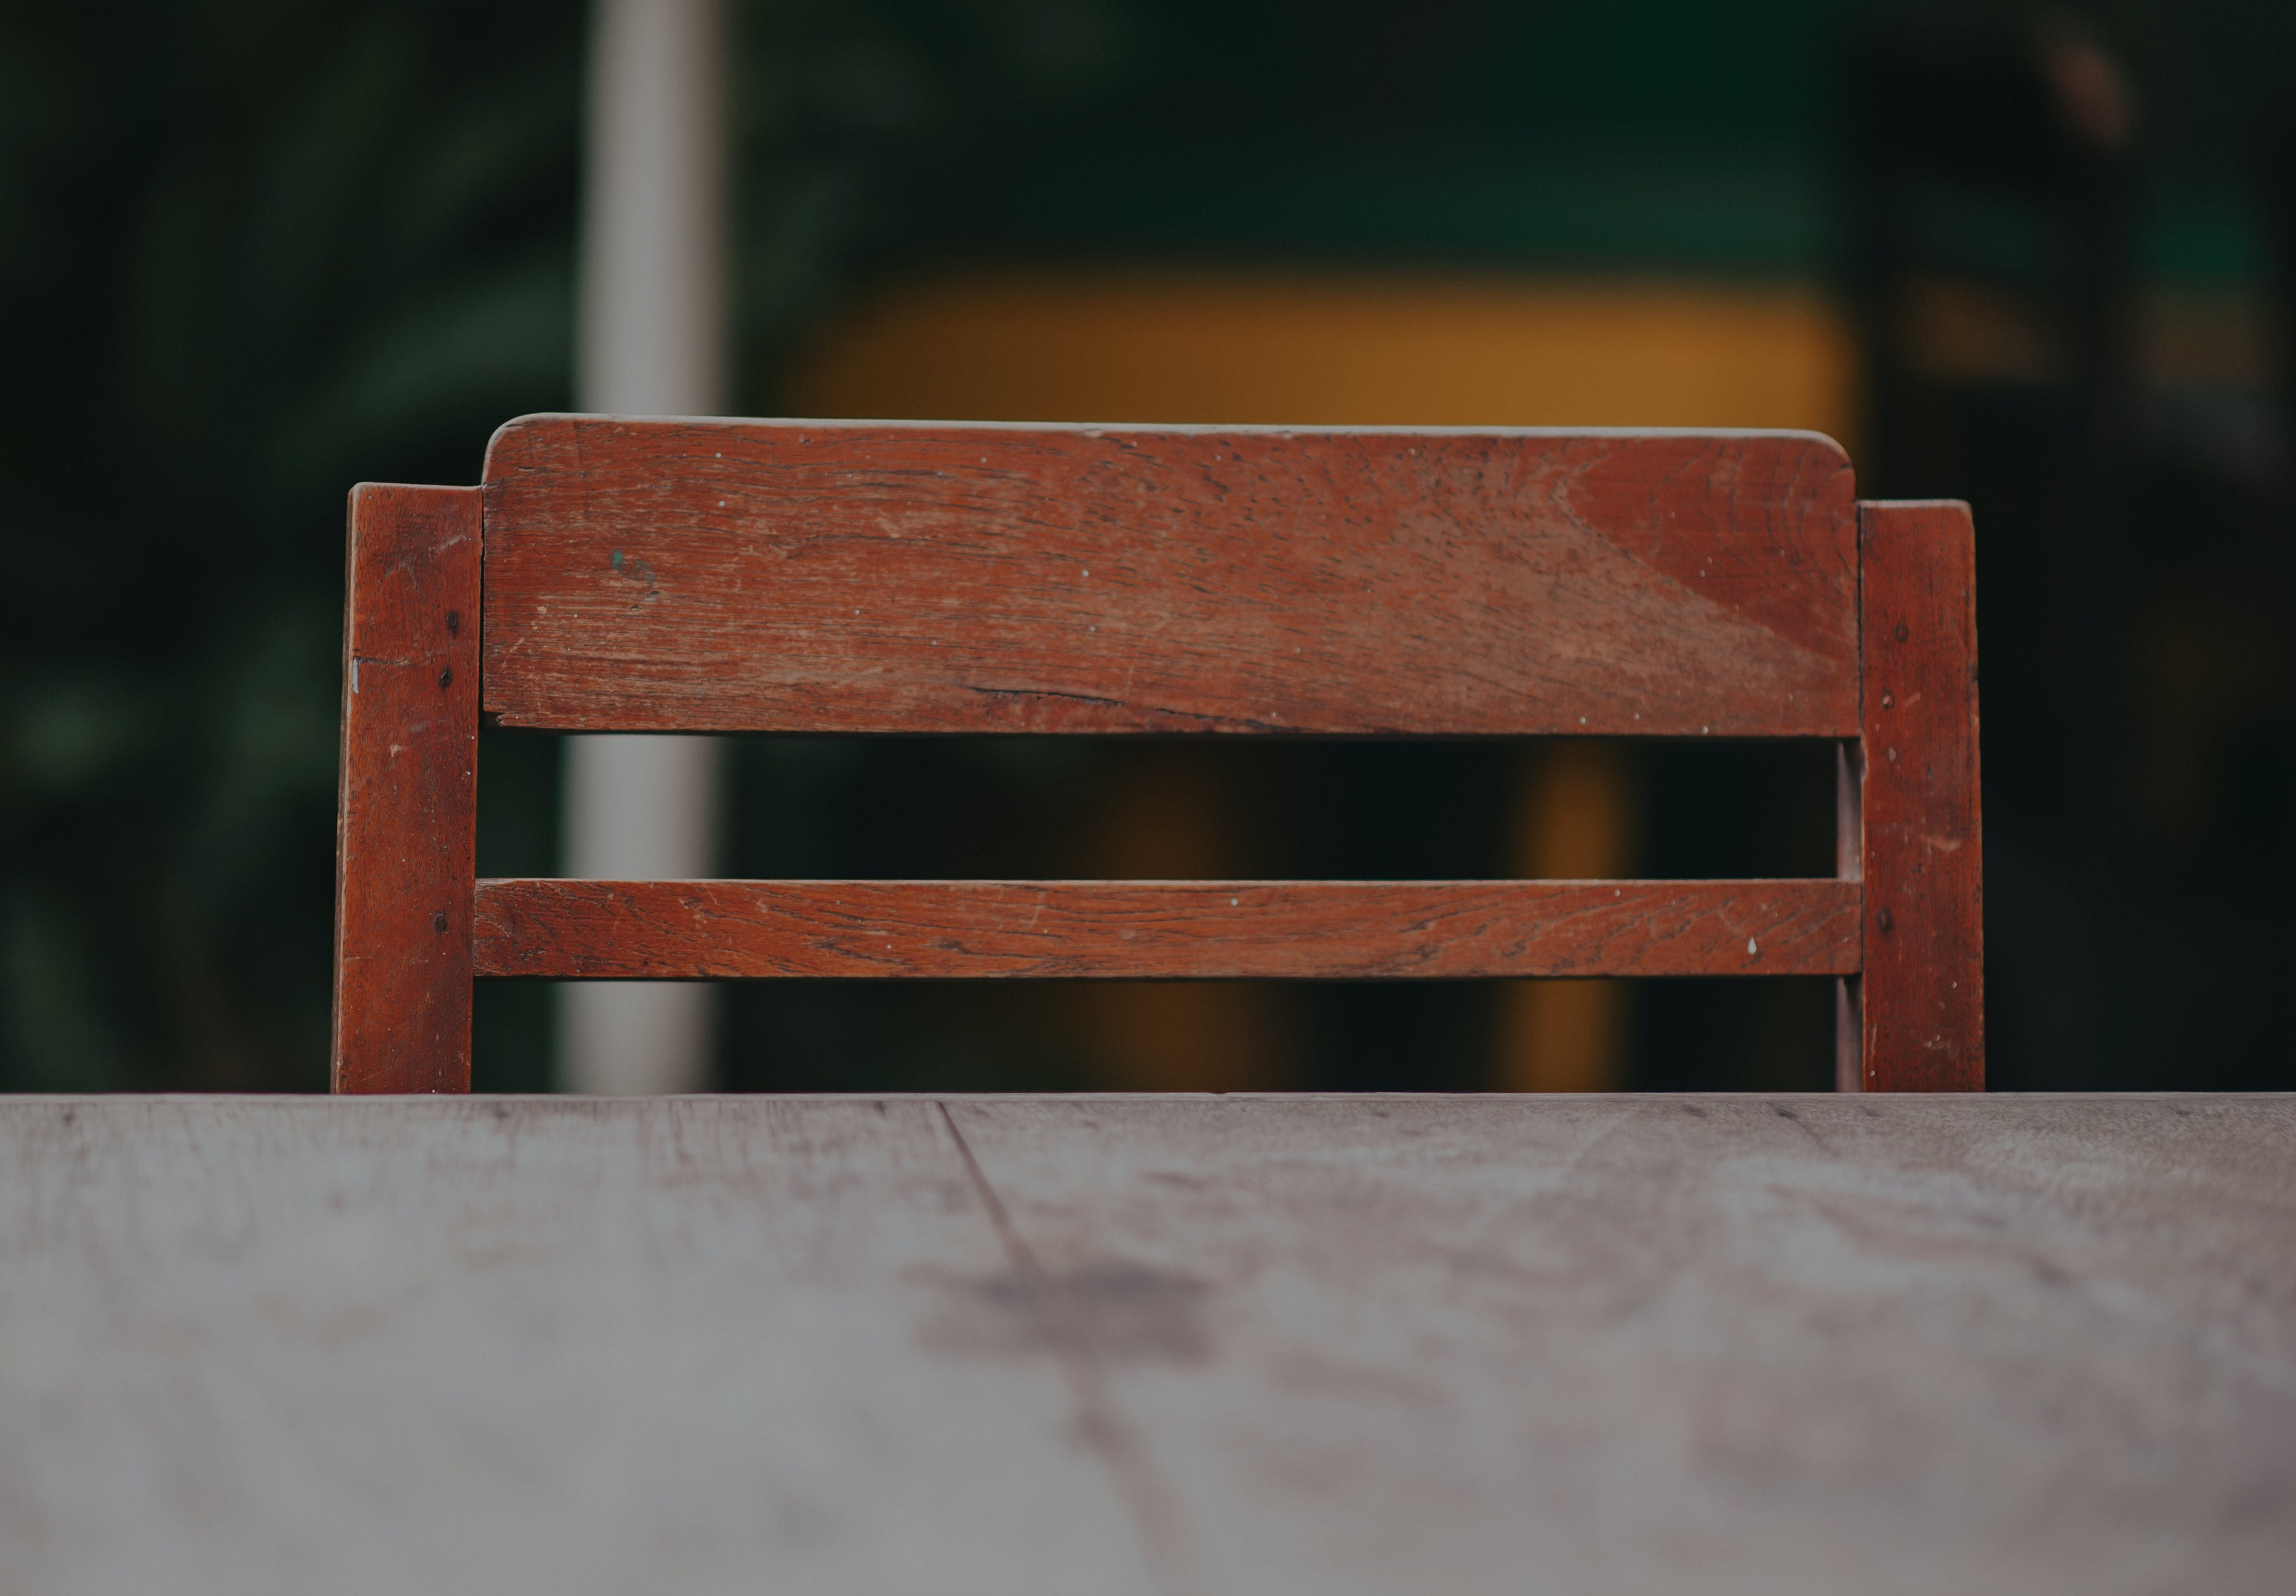 Photo of Wooden Chair Next to Wooden Table